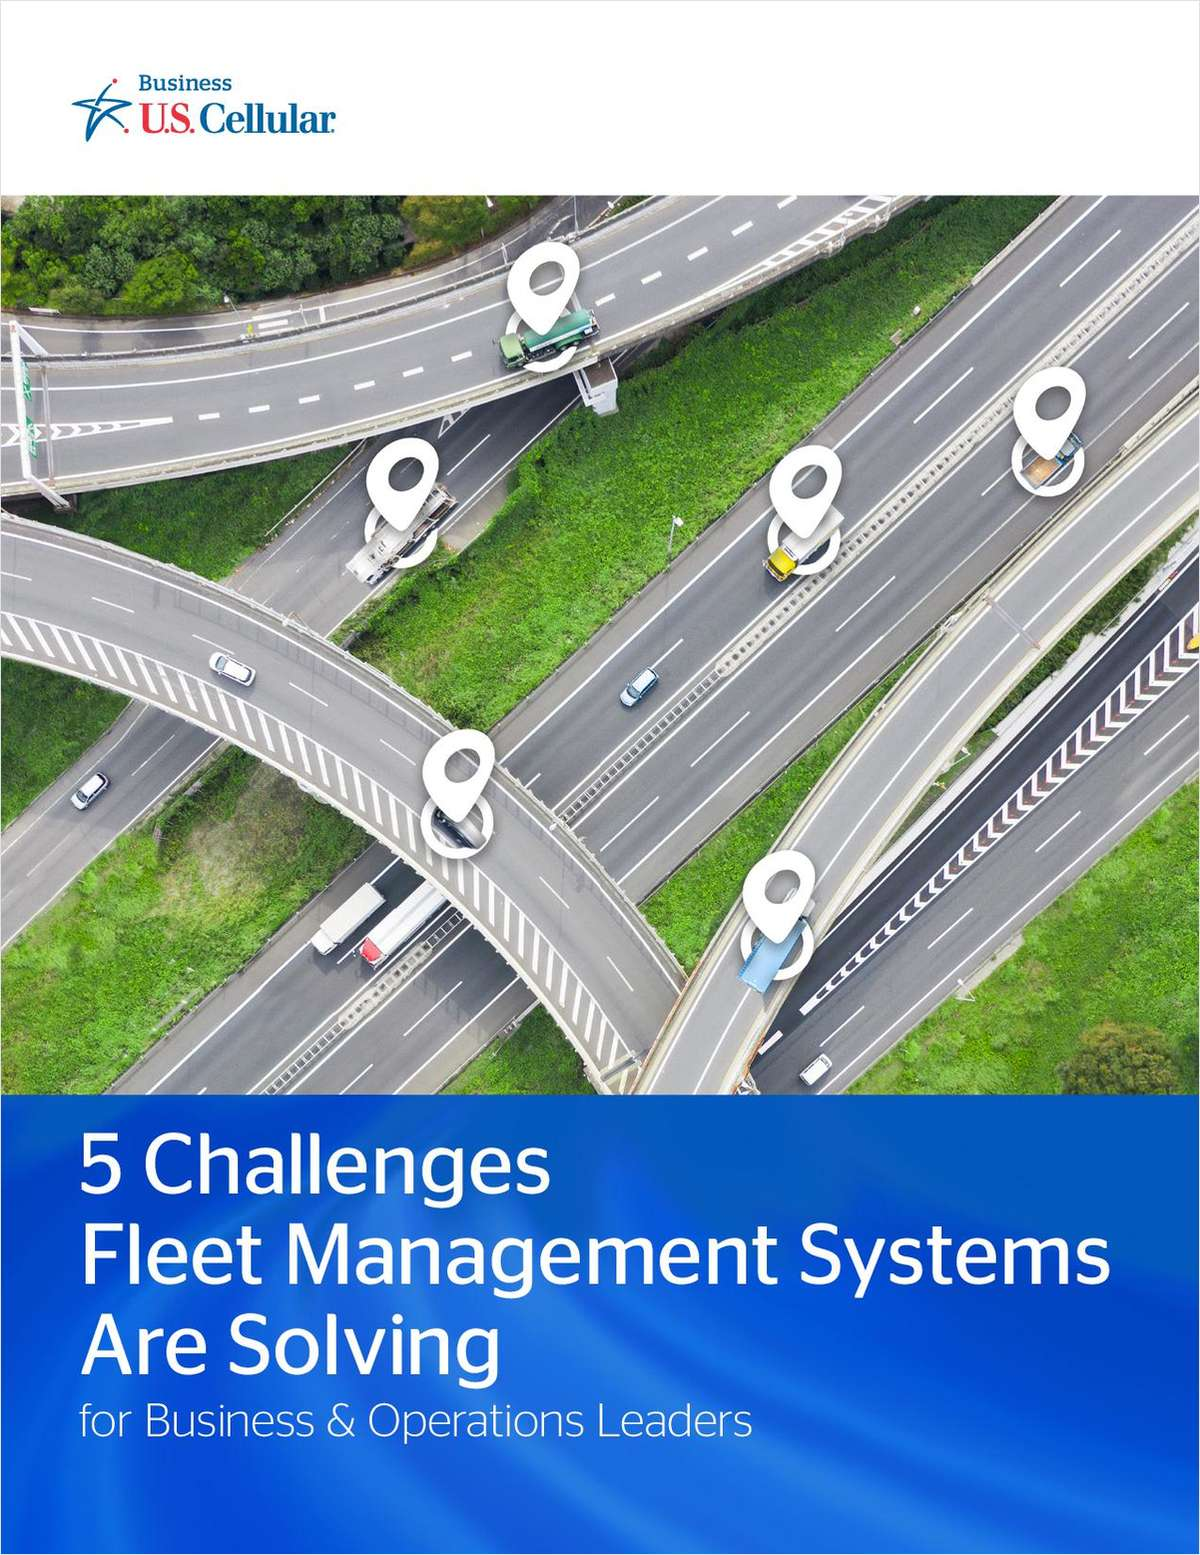 The 5 Challenges Fleet Management Systems Are Solving for Business and Operations Leaders